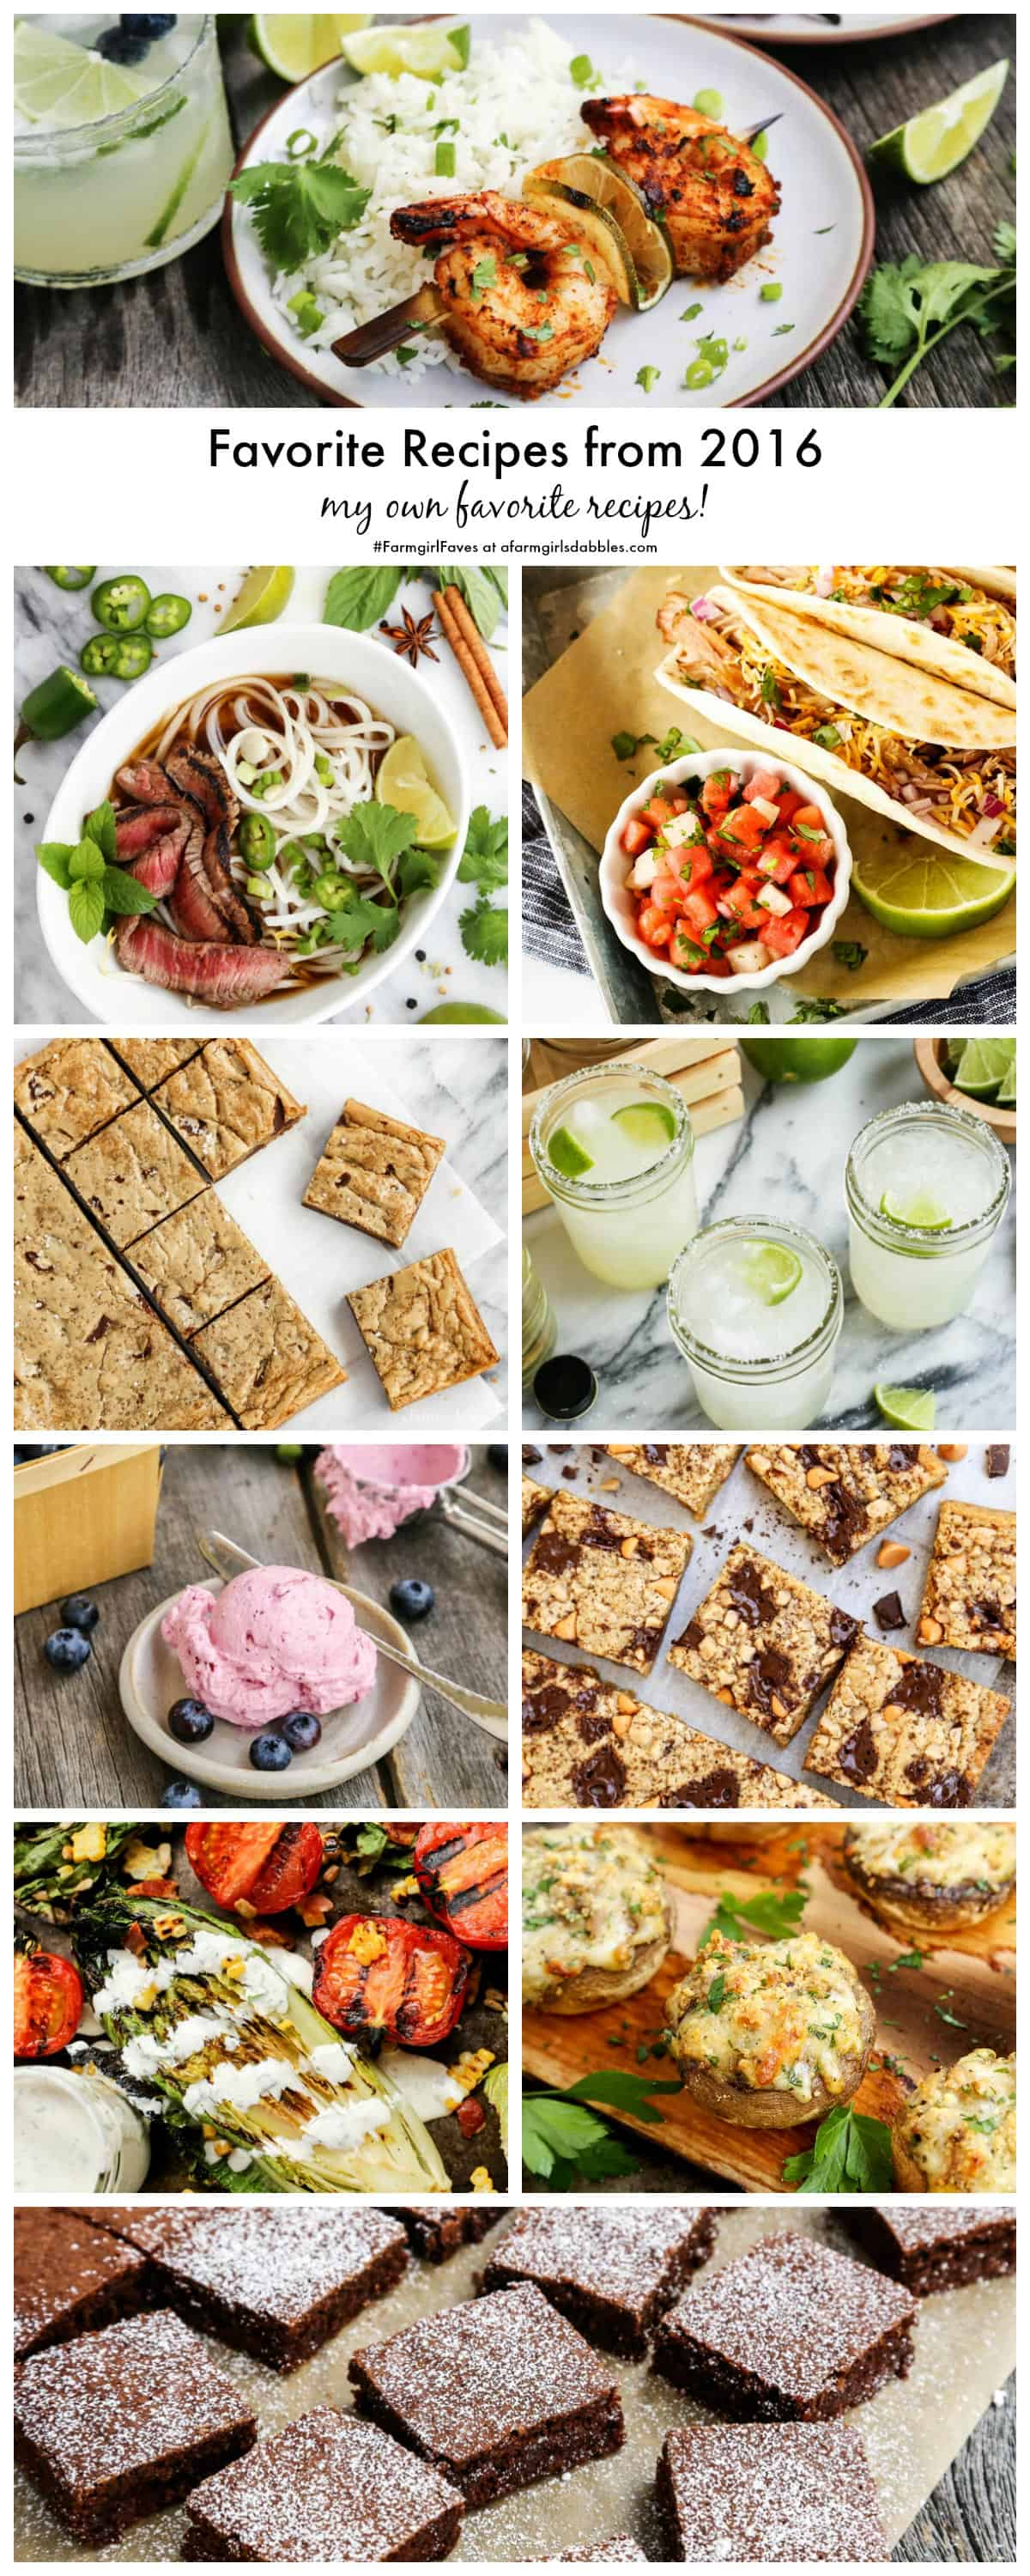 Favorite Recipes from 2016 - my own favorite recipes! - from afarmgirlsdabbles.com